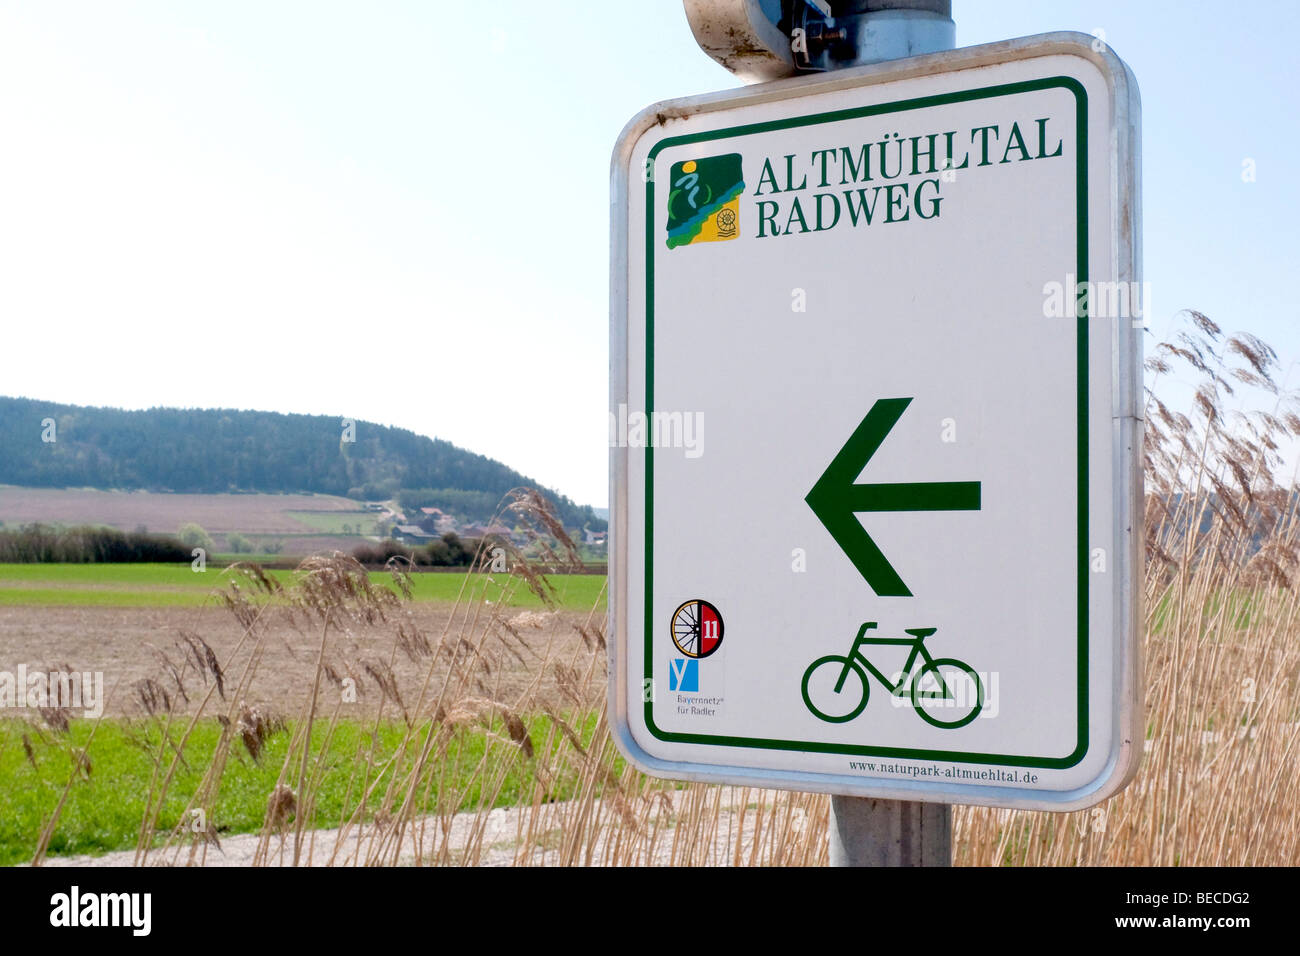 Sign of the Altmuehltal valley cycle path near Dollstein in the Altmuehltal valley, Bavaria, Germany, Europe - Stock Image